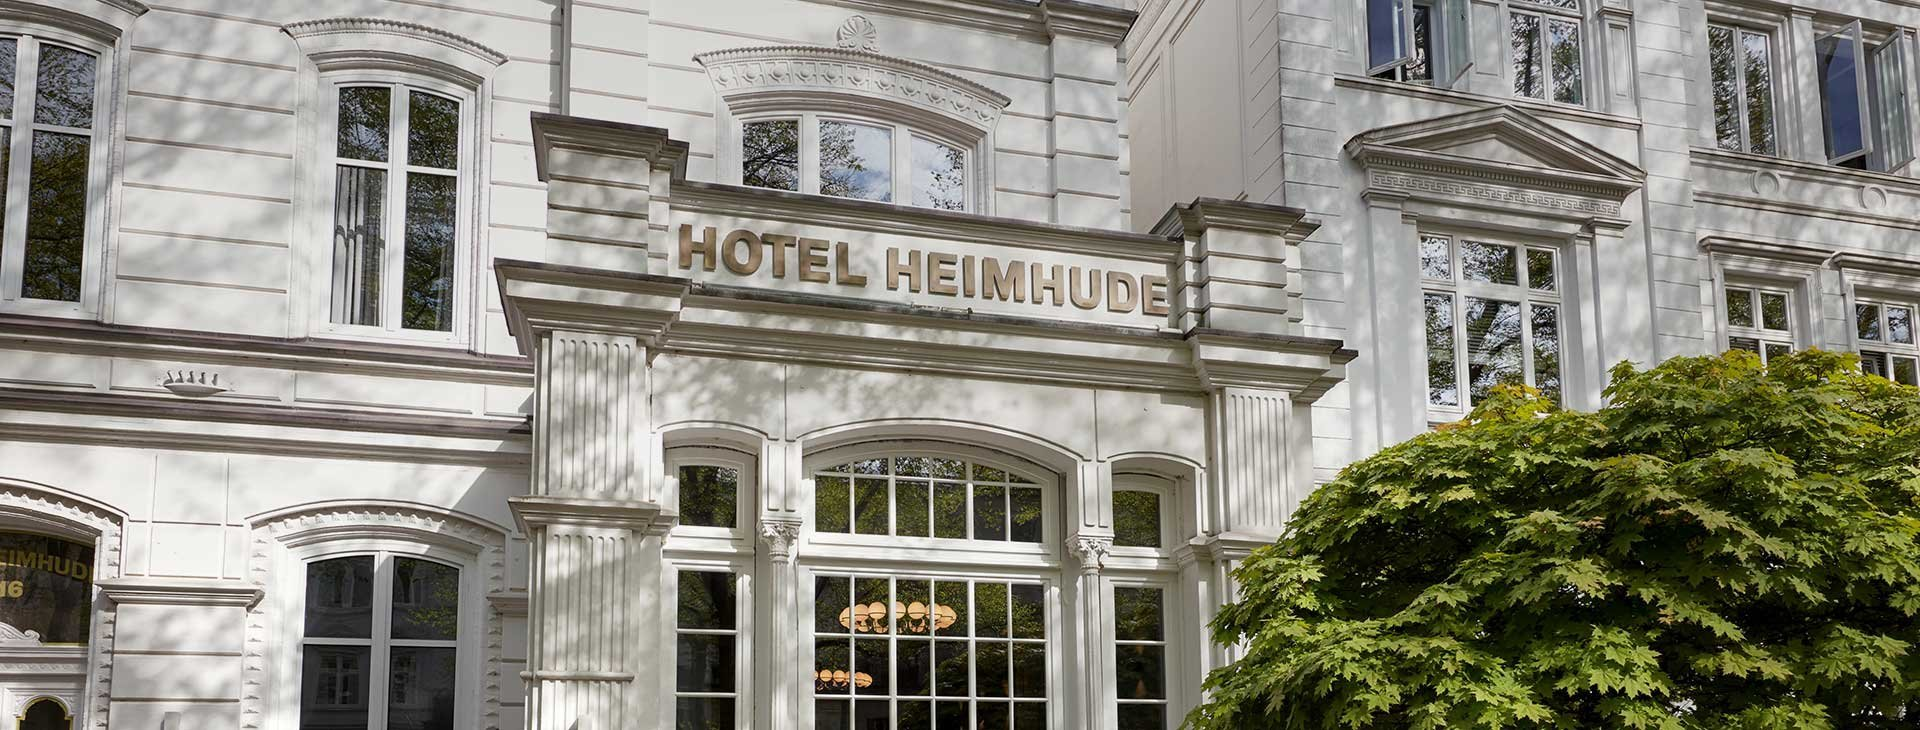 stilwerkhotels_heimhude_front_shooting_2020_stage